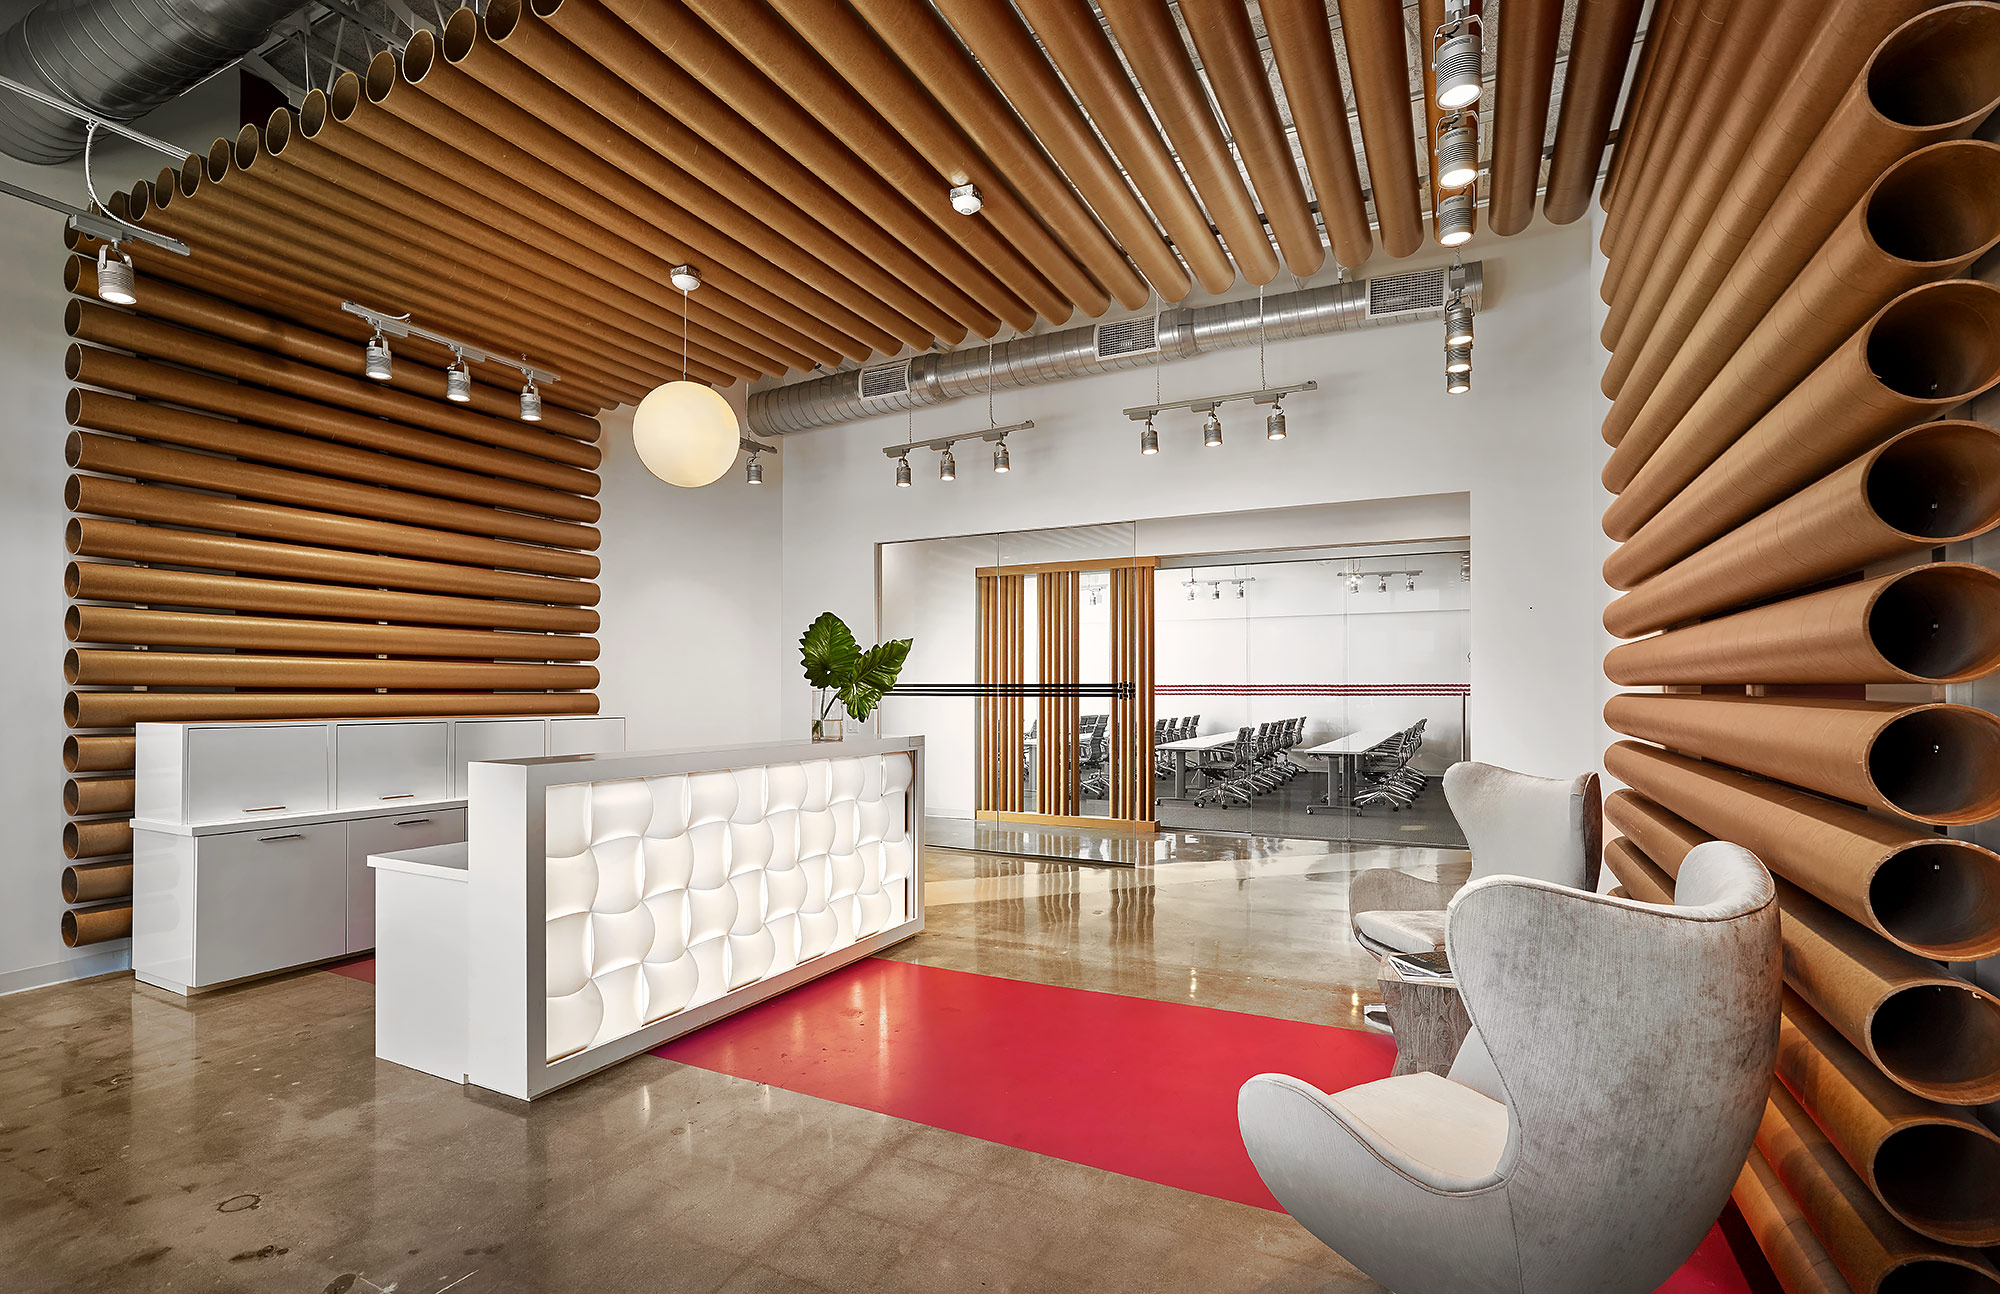 Valley-Forge-Reception-Commercial-Architecture-Fort-Lauderdale